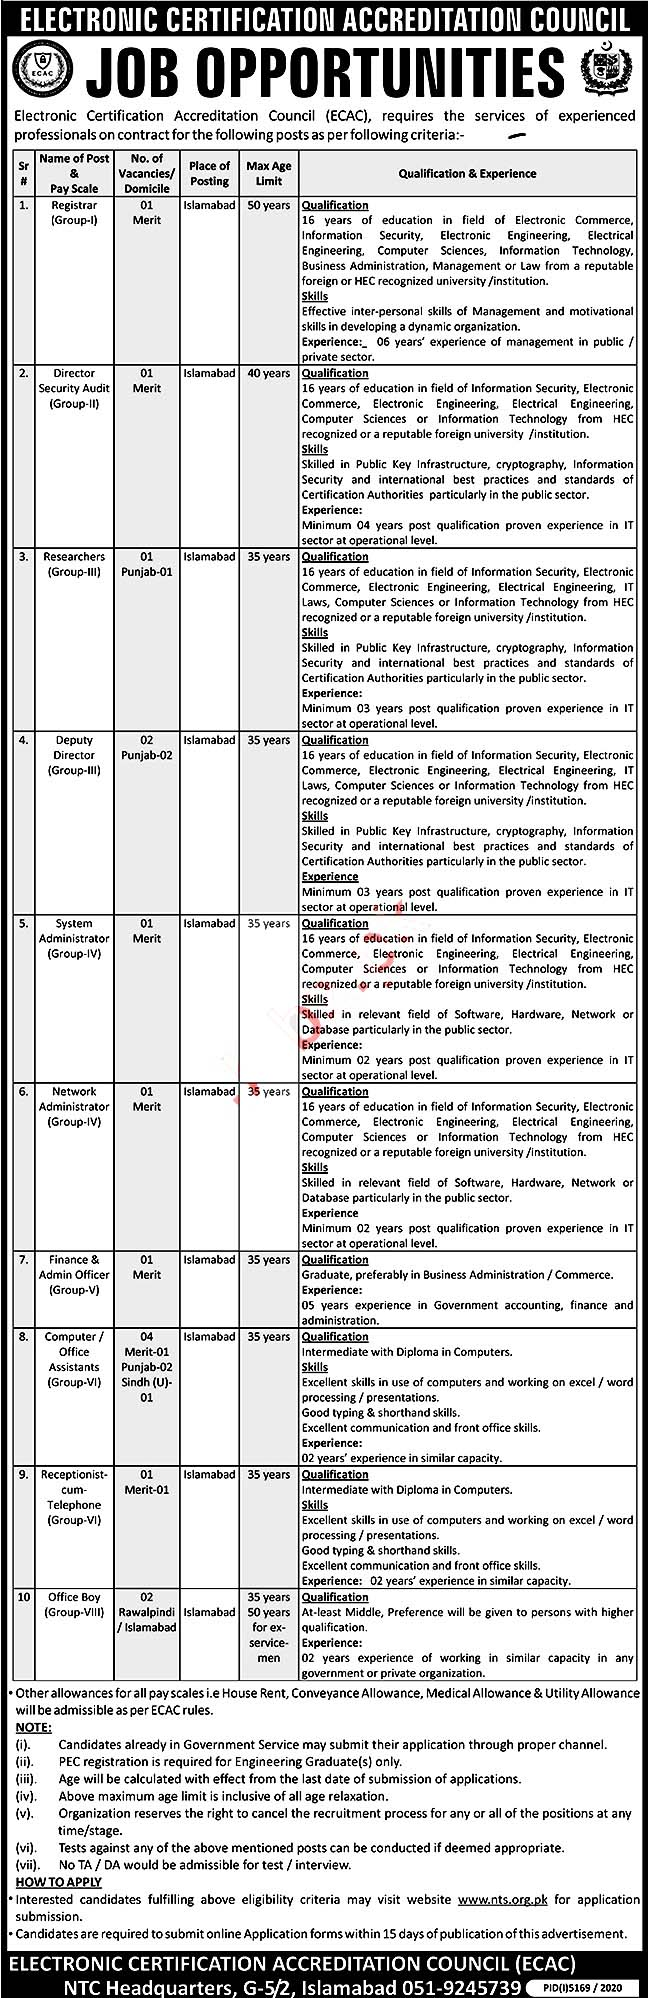 Latest New Jobs in Electronic Certification Accreditation Council  ECAC Pakistan